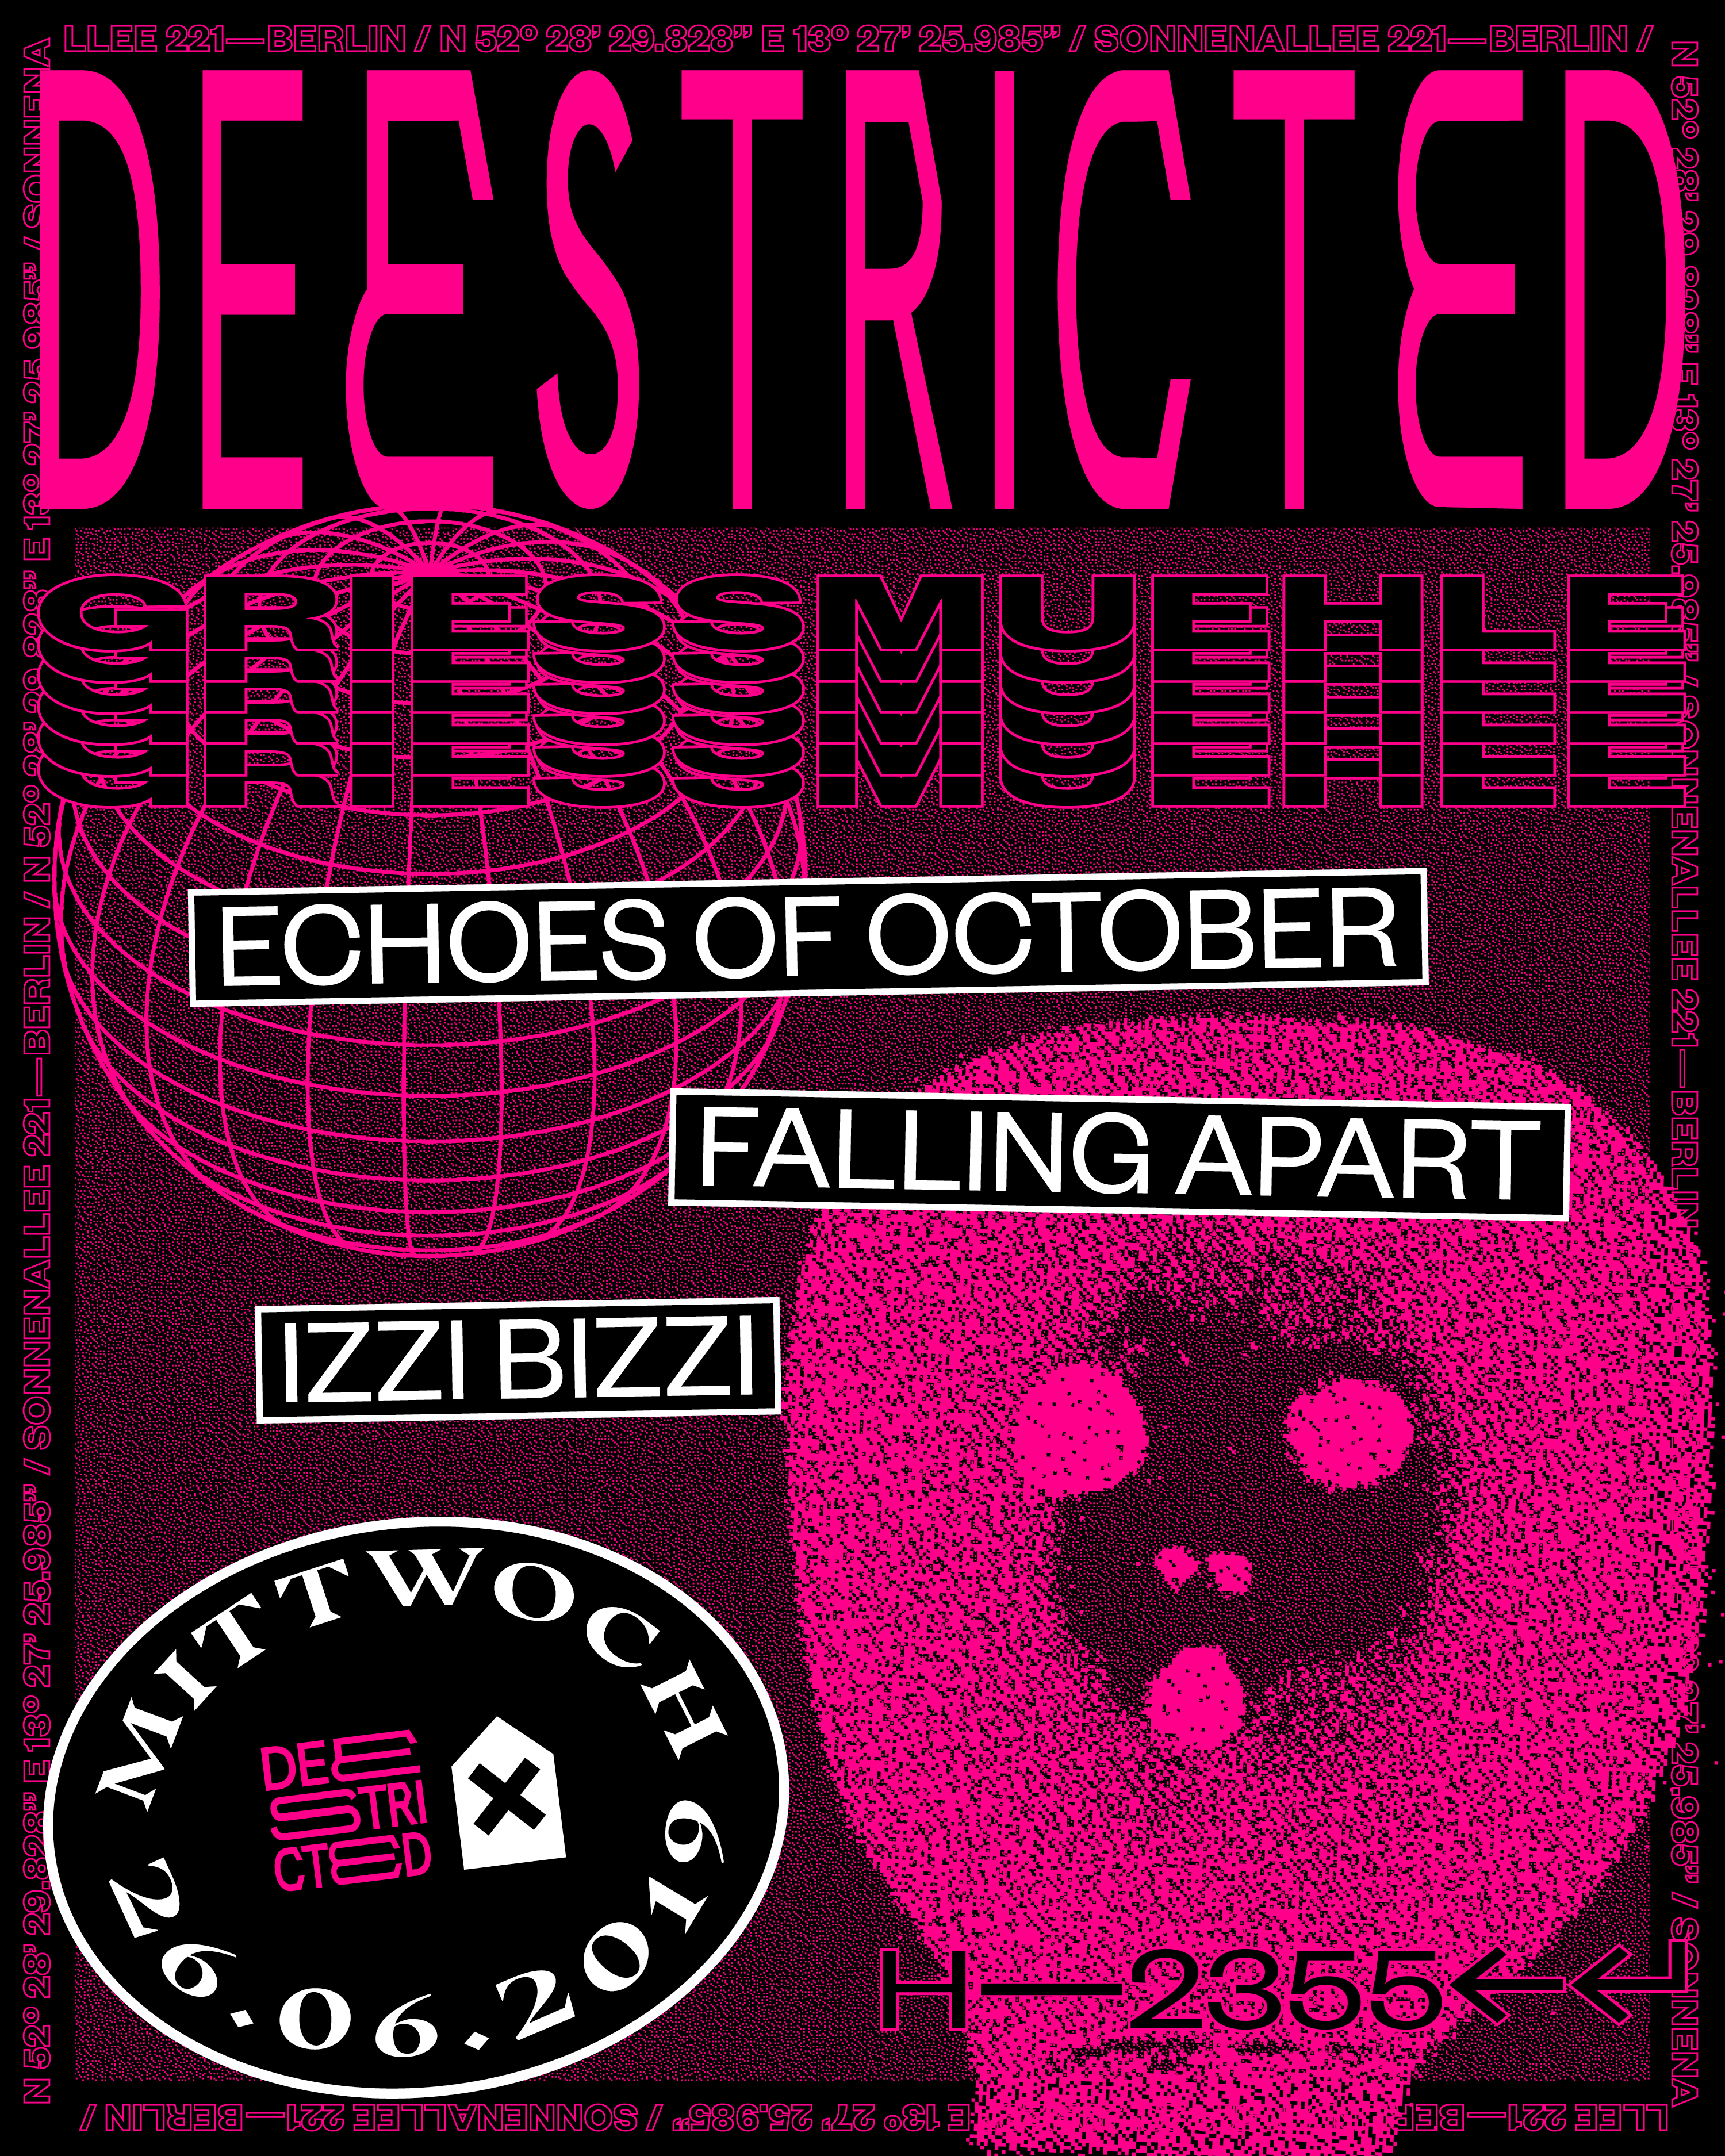 Deestricted with Echoes of October Falling Apart